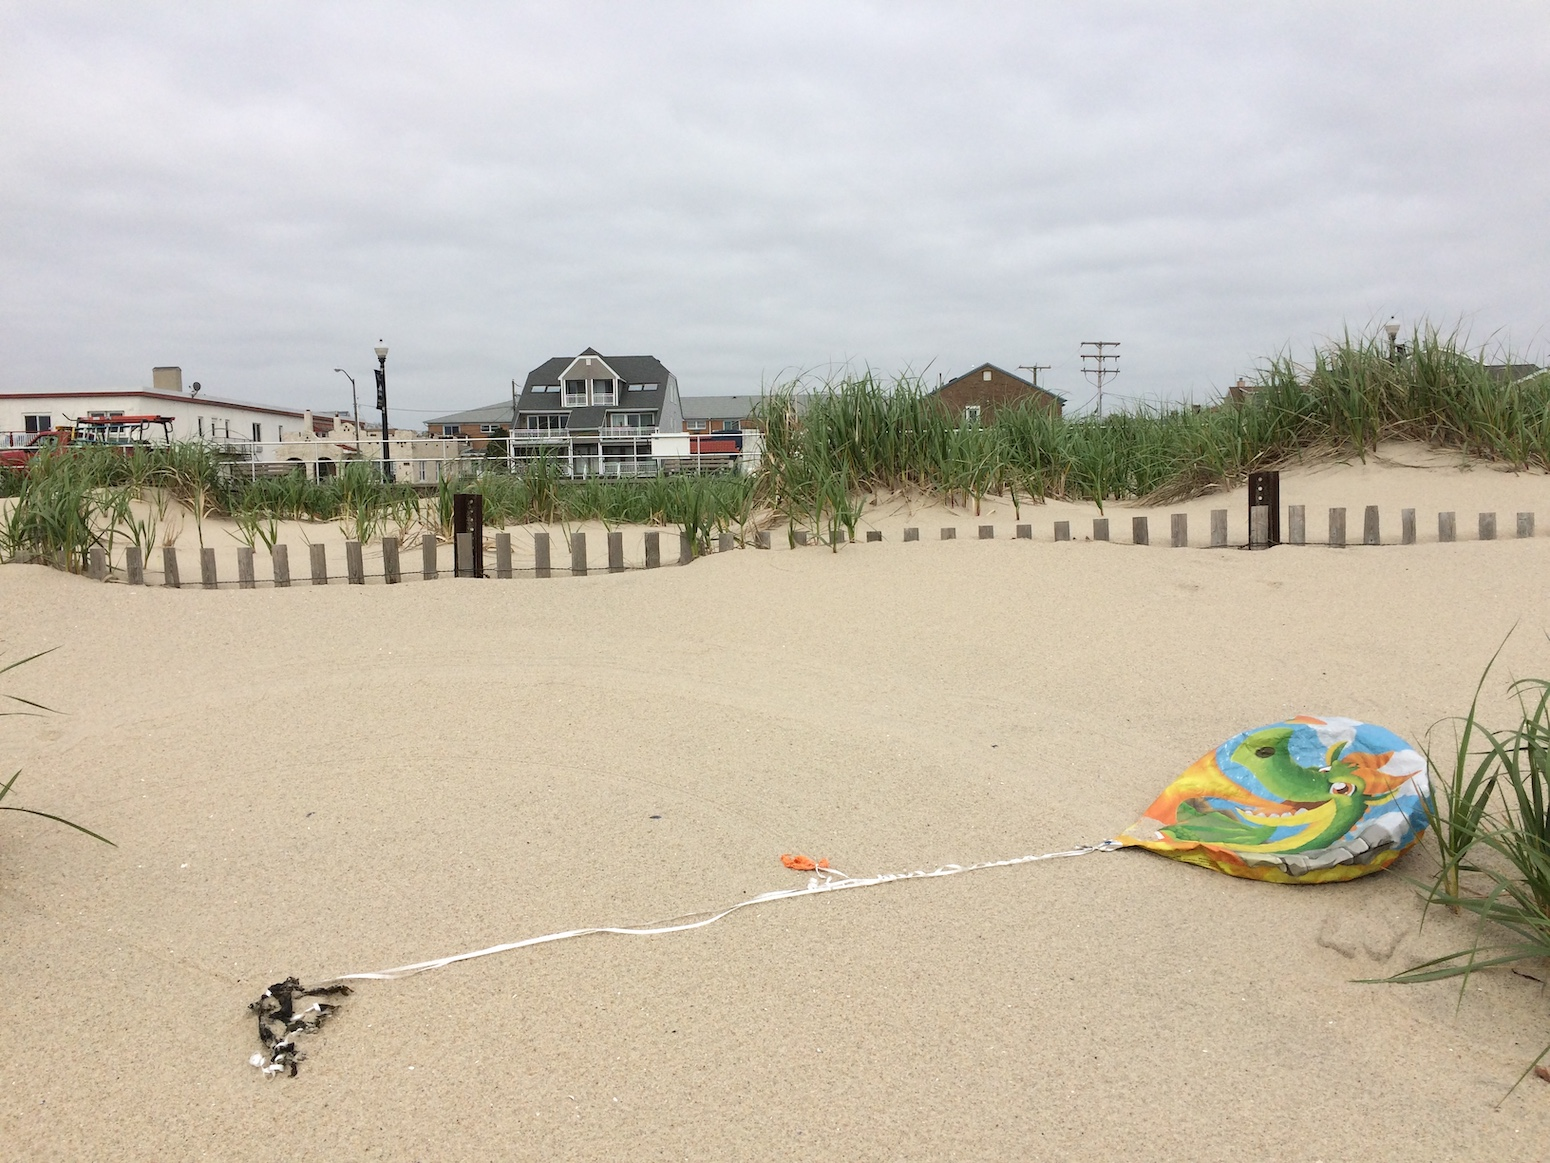 VICTORY! LONG BRANCH OFFICIALLY BANS INTENTIONAL BALLOON RELEASE!